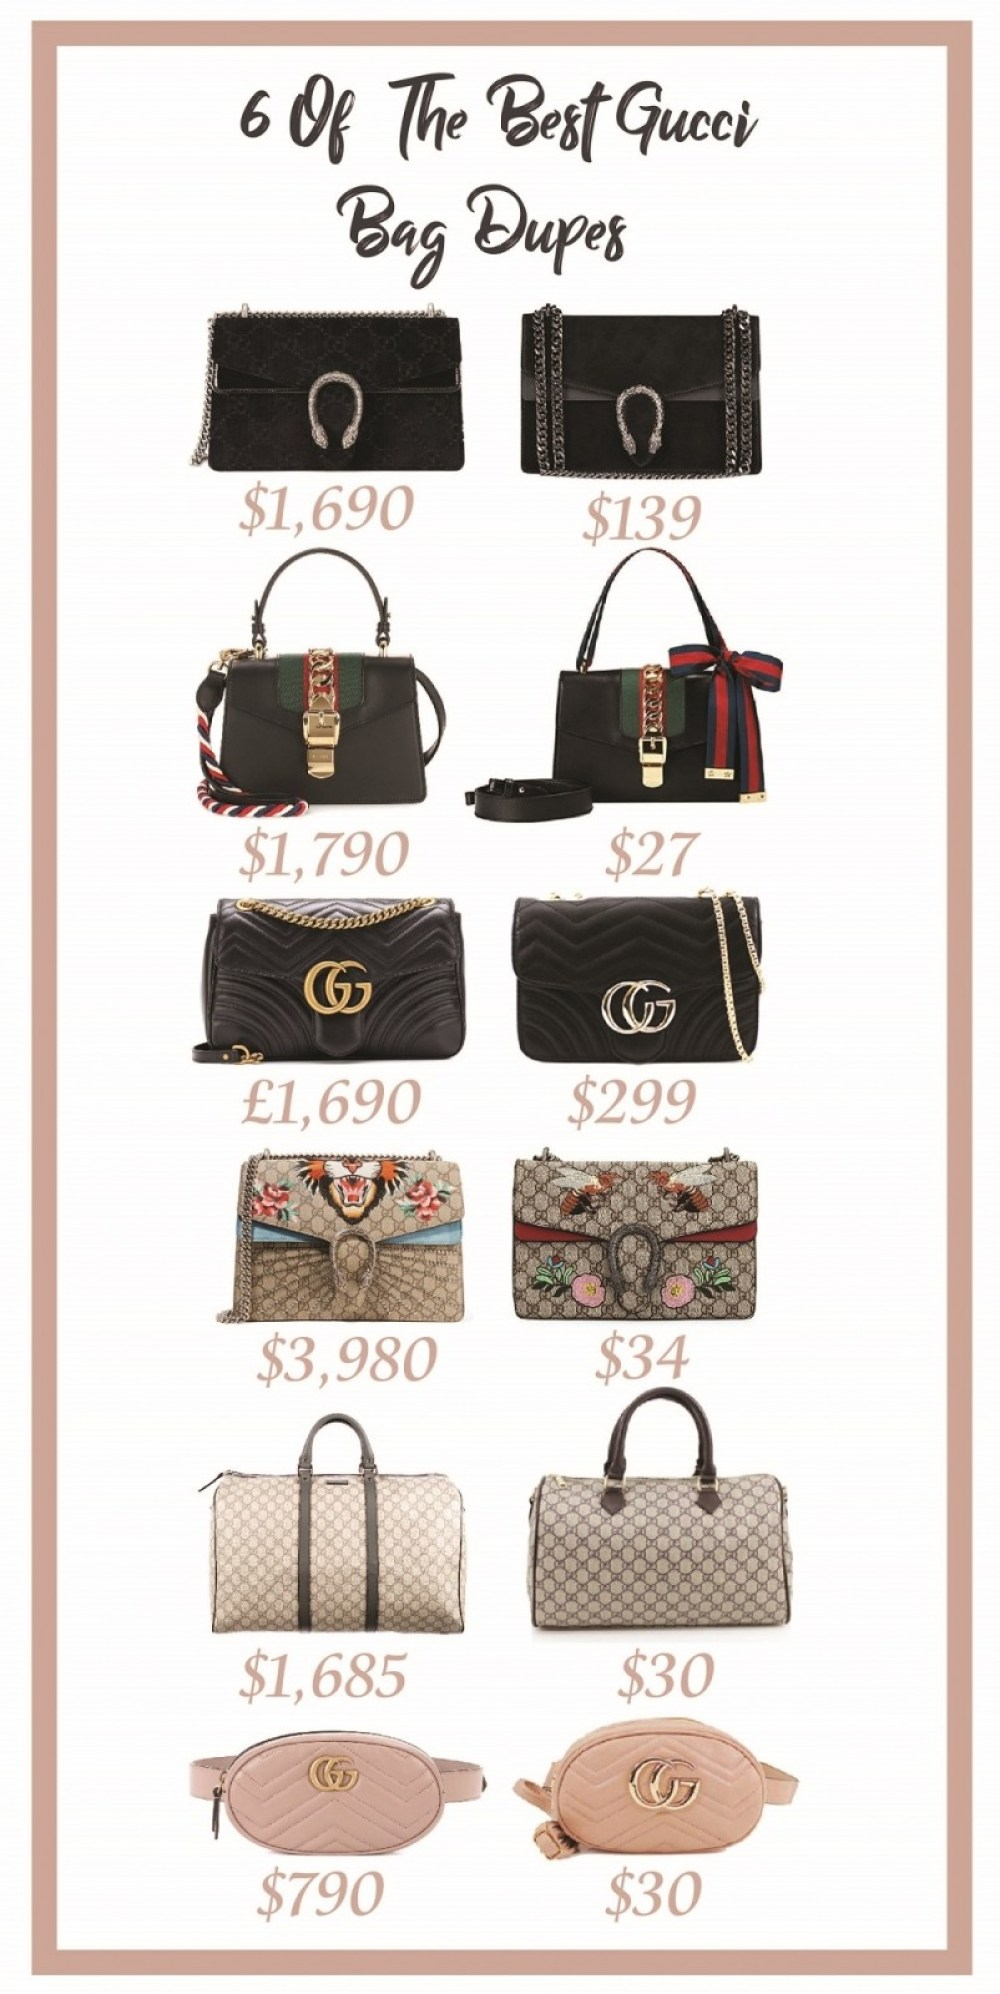 6 Of The Best Gucci Bag Dupes